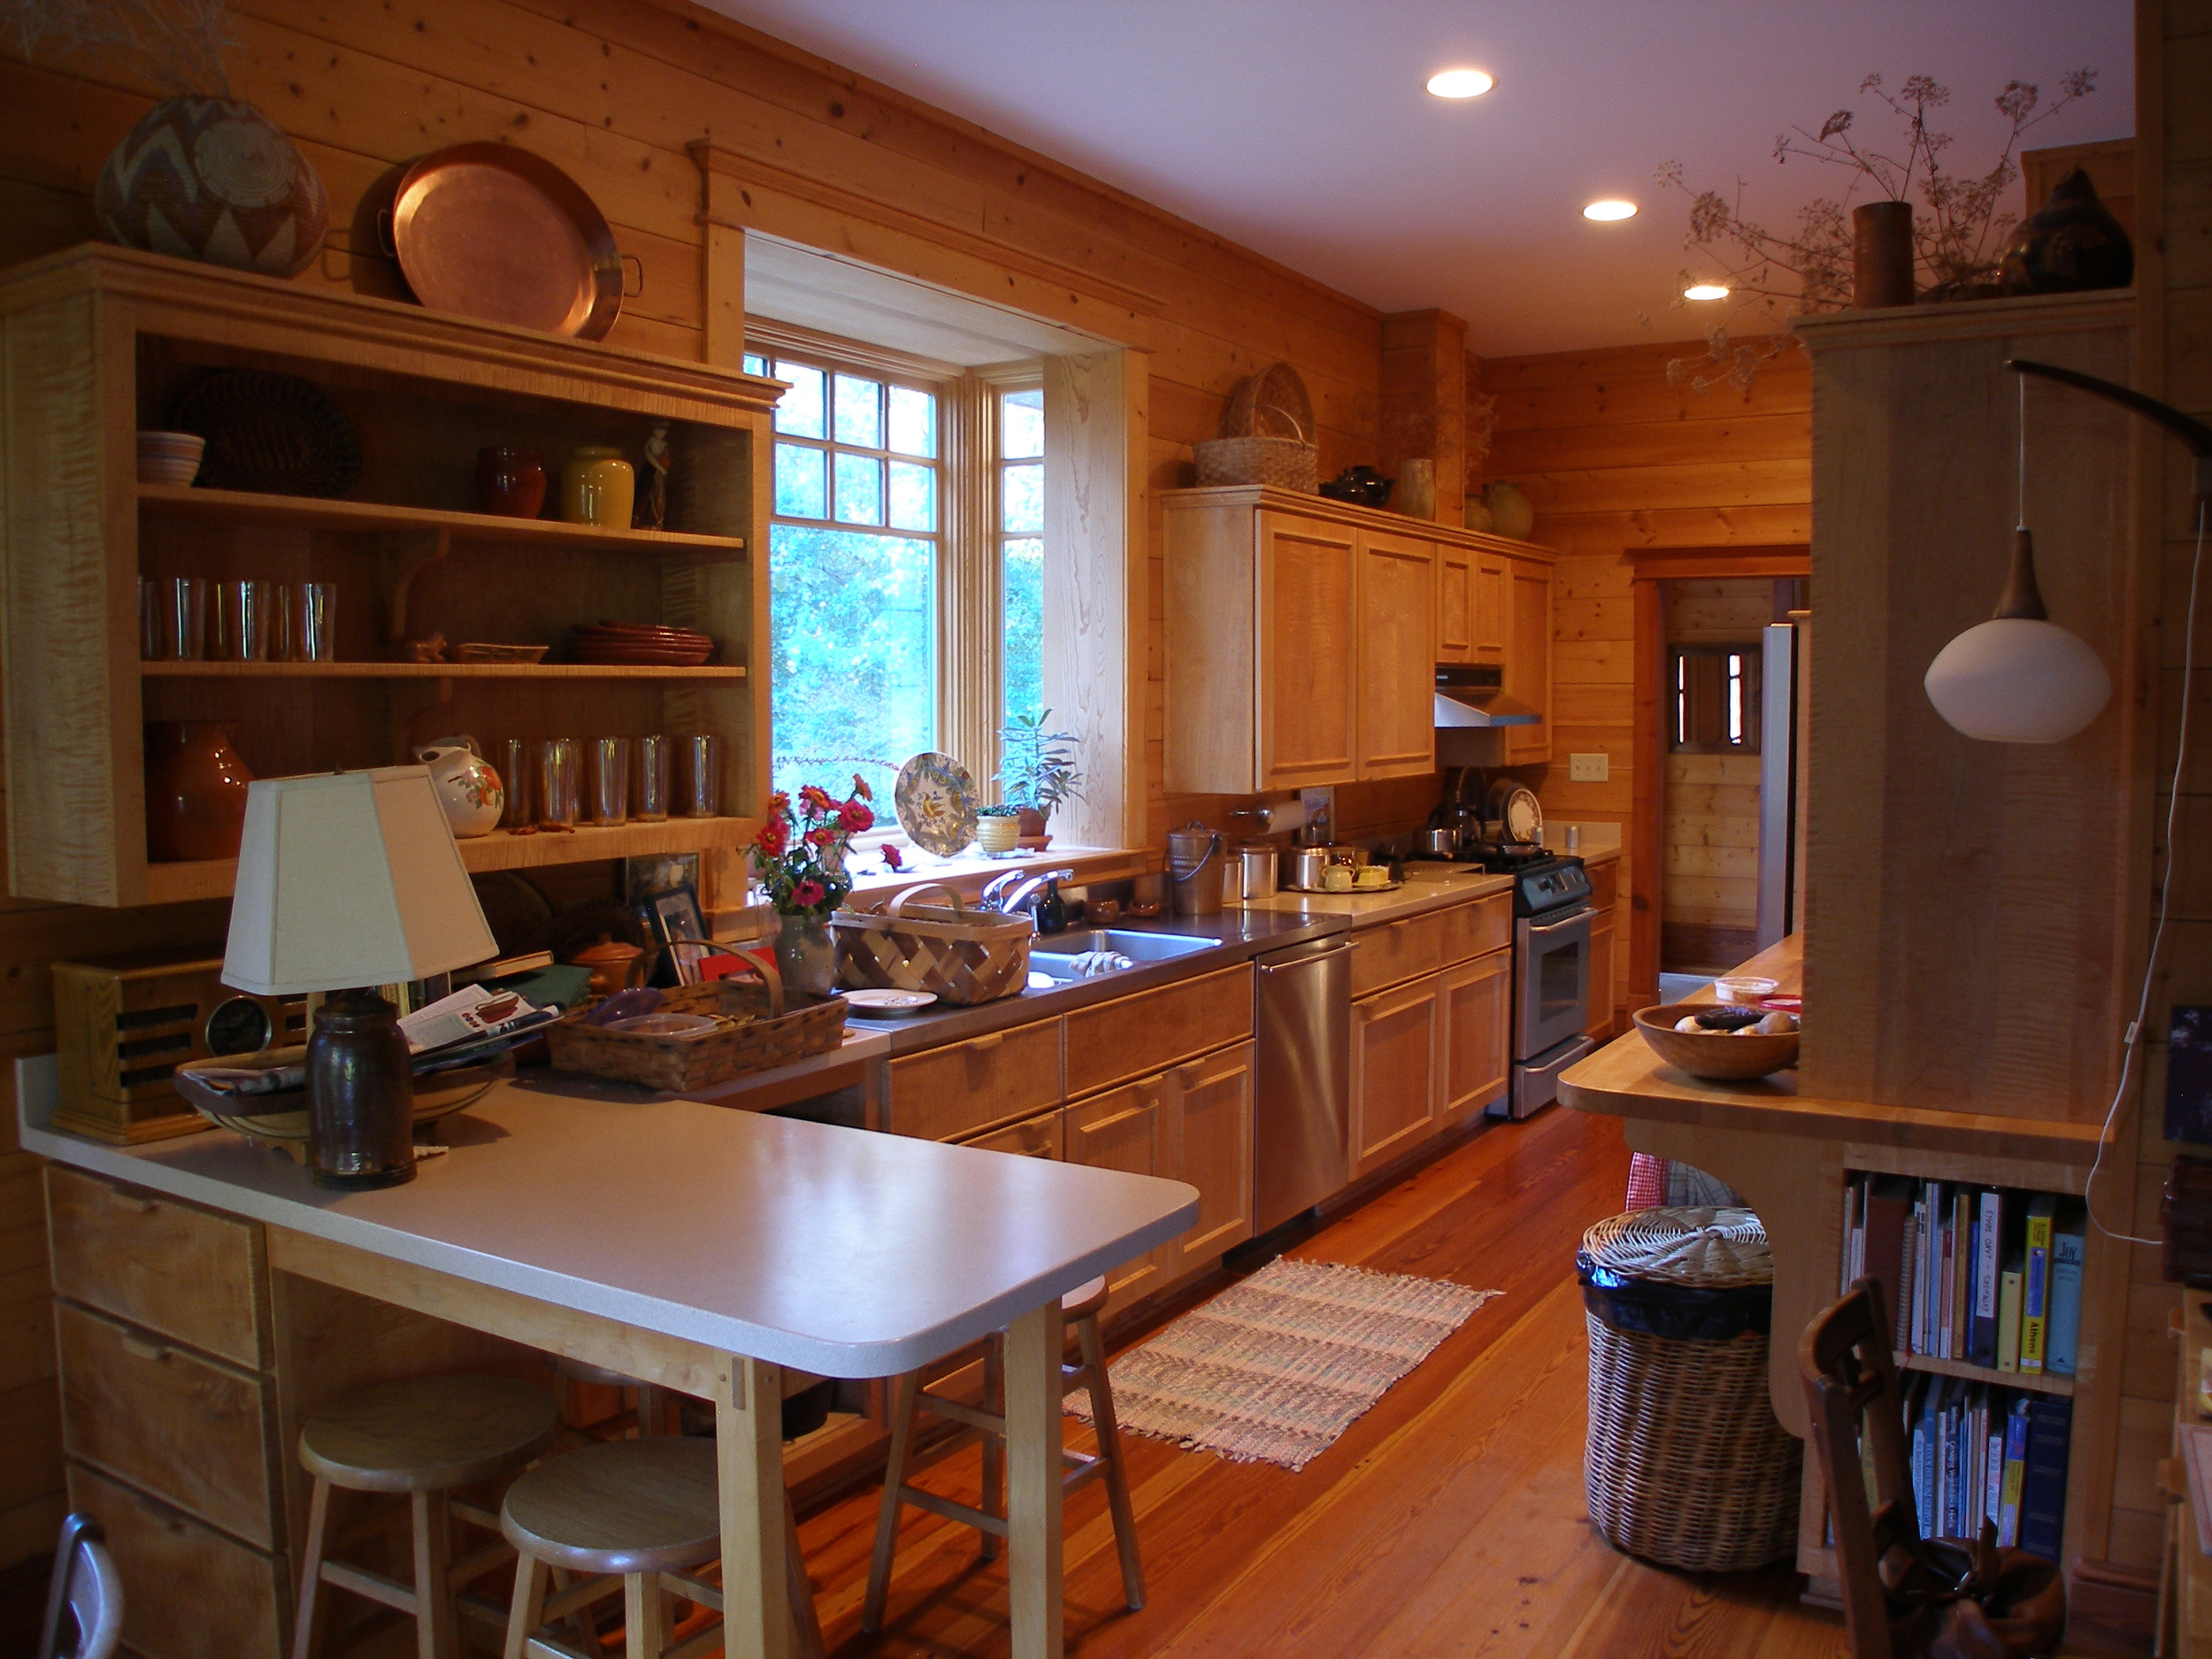 View of sink and window in galley kitchen.